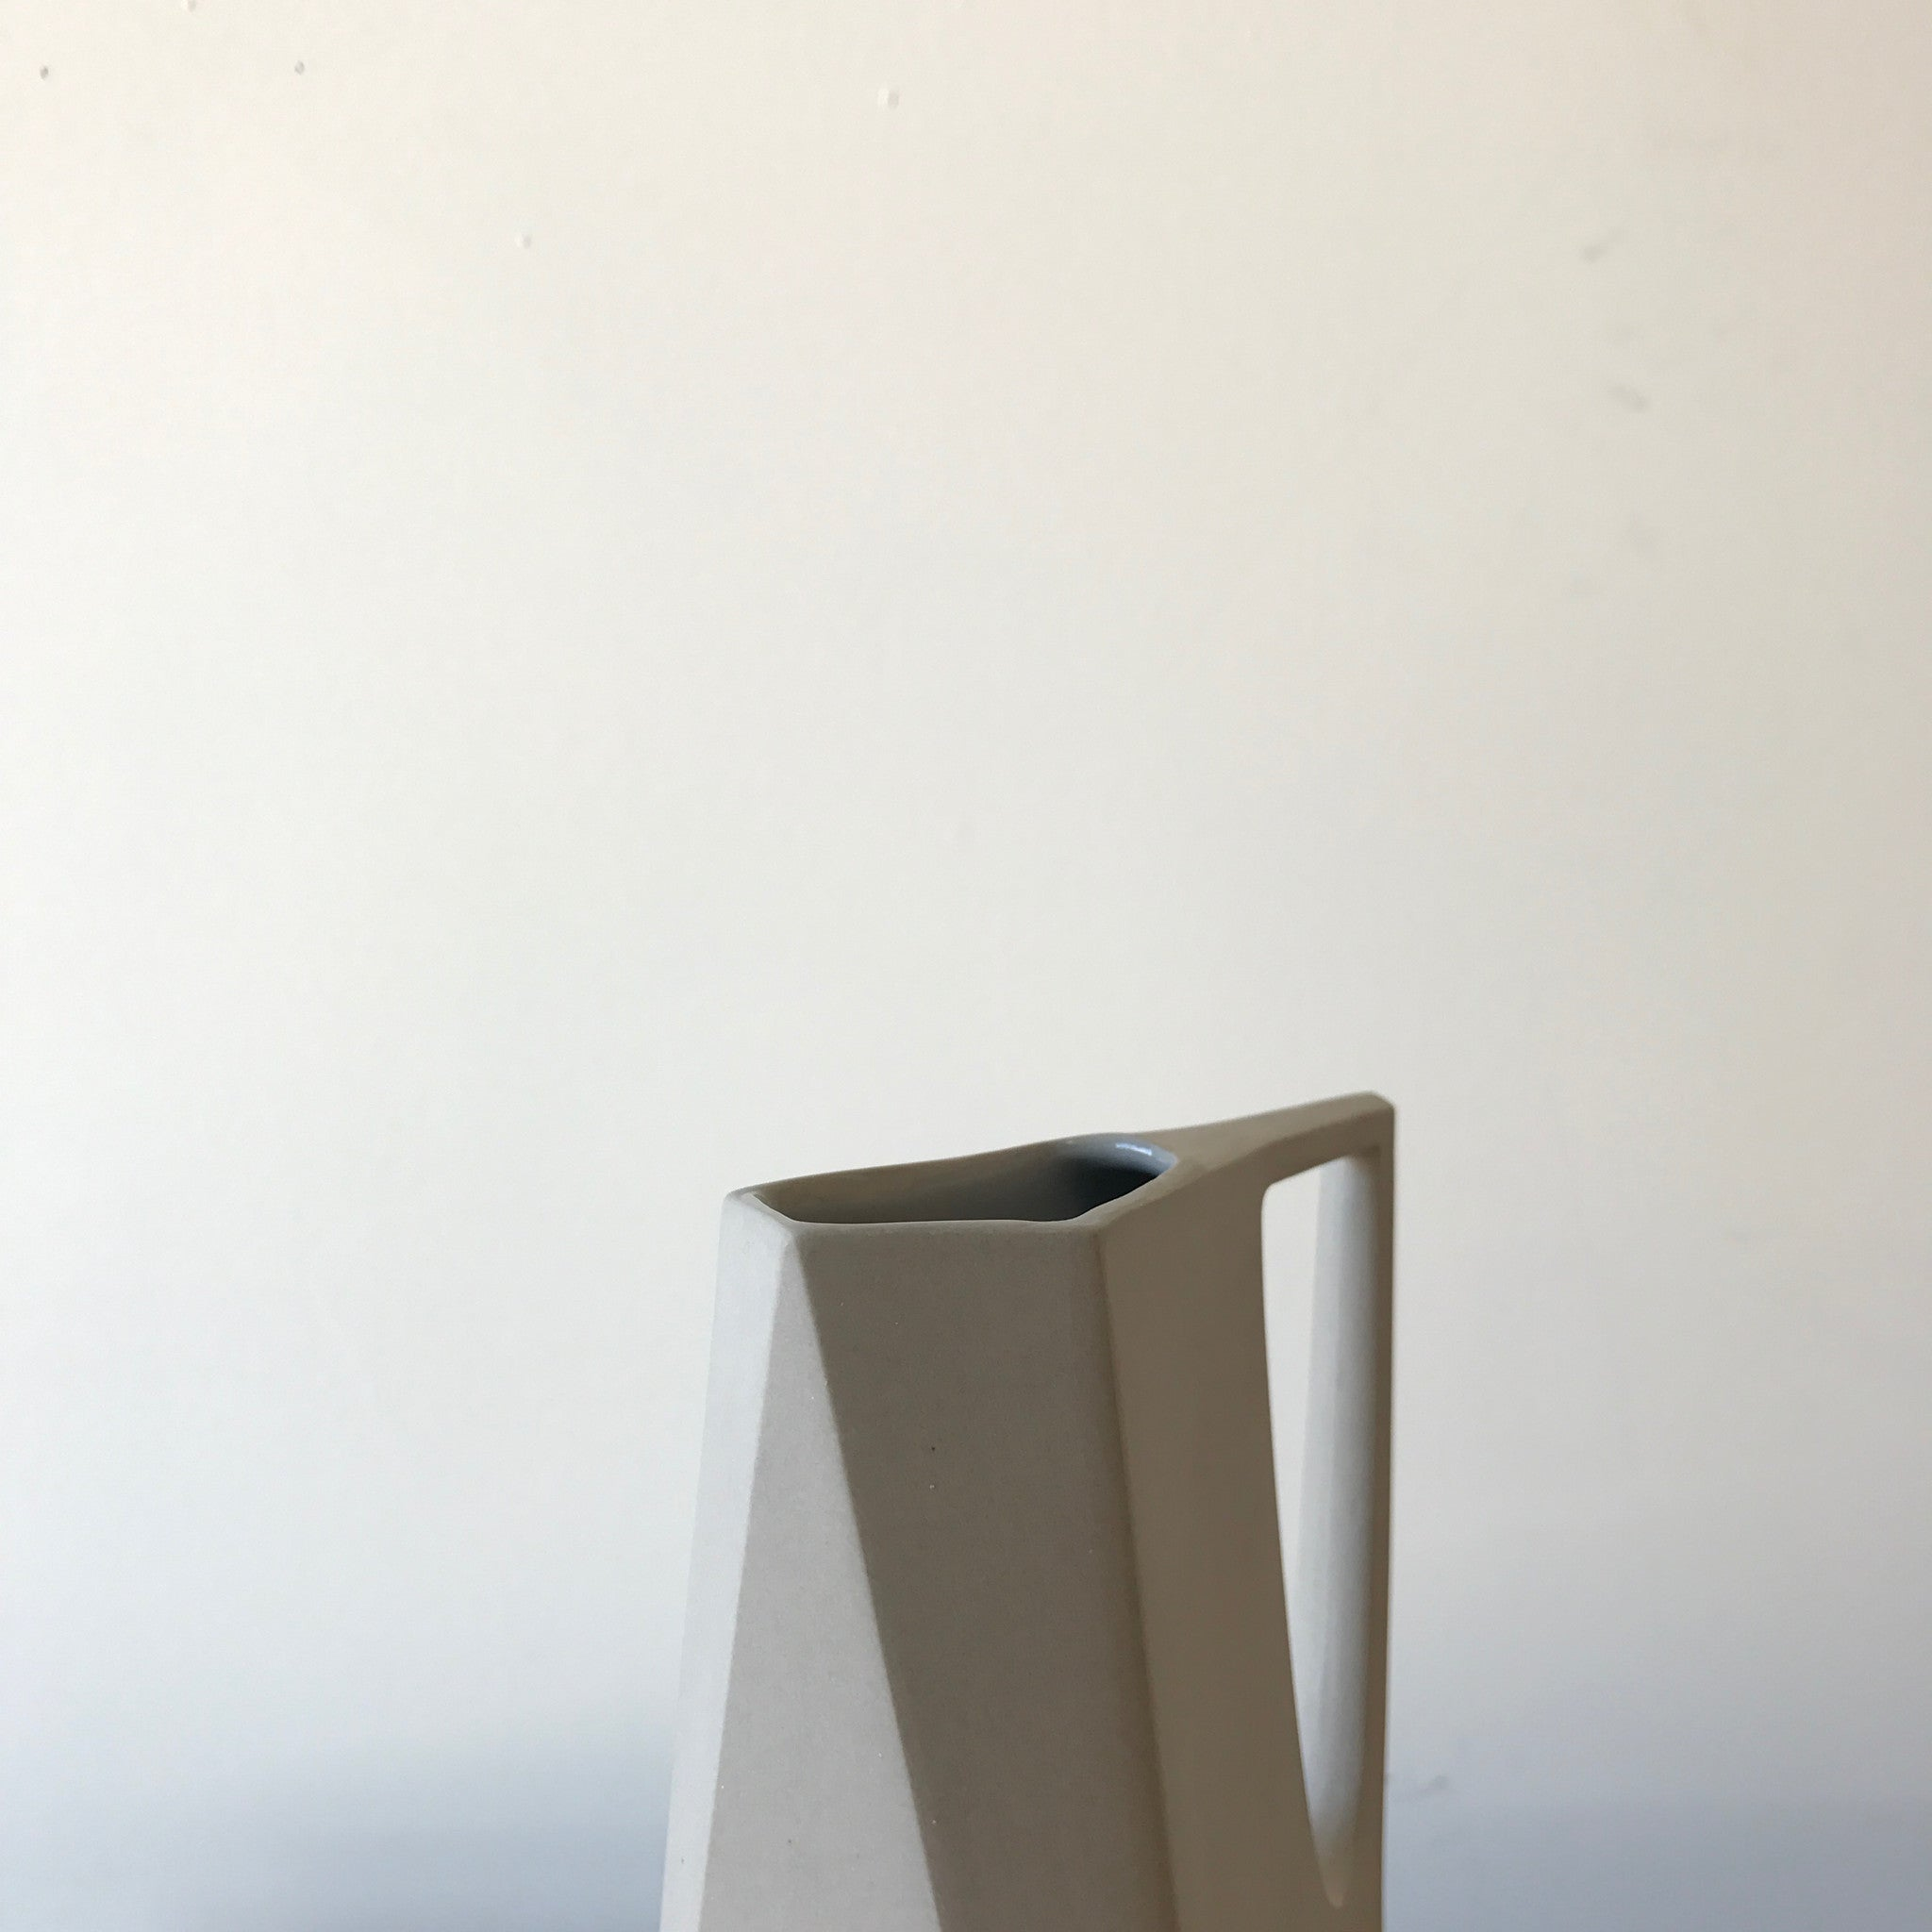 Porcelain Pitcher in Dry Sage by Edgewood Made